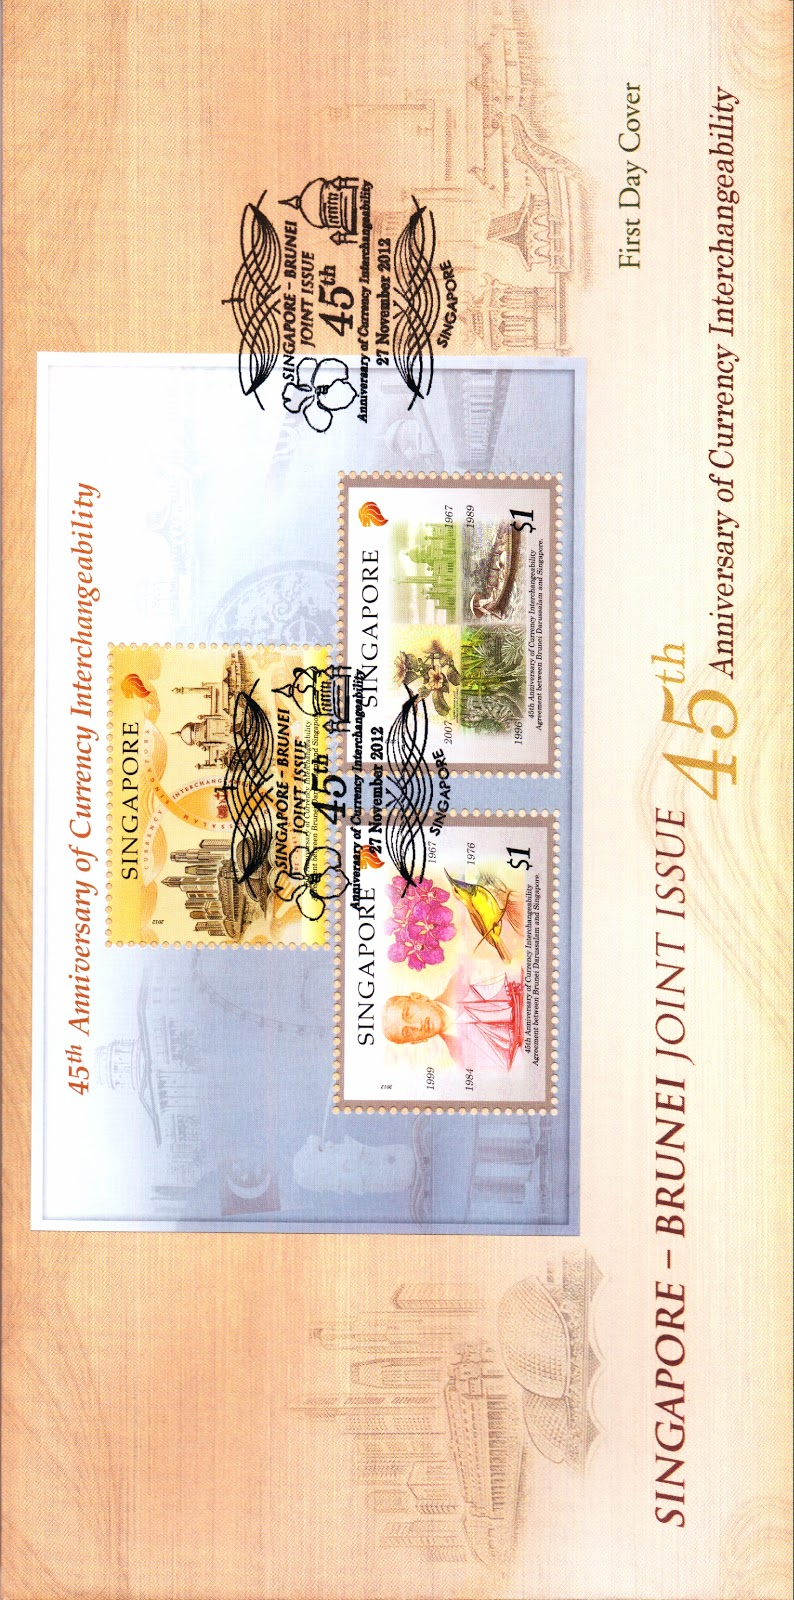 Pre-cancelled First Day Cover with Miniature Sheet (S$4.90)